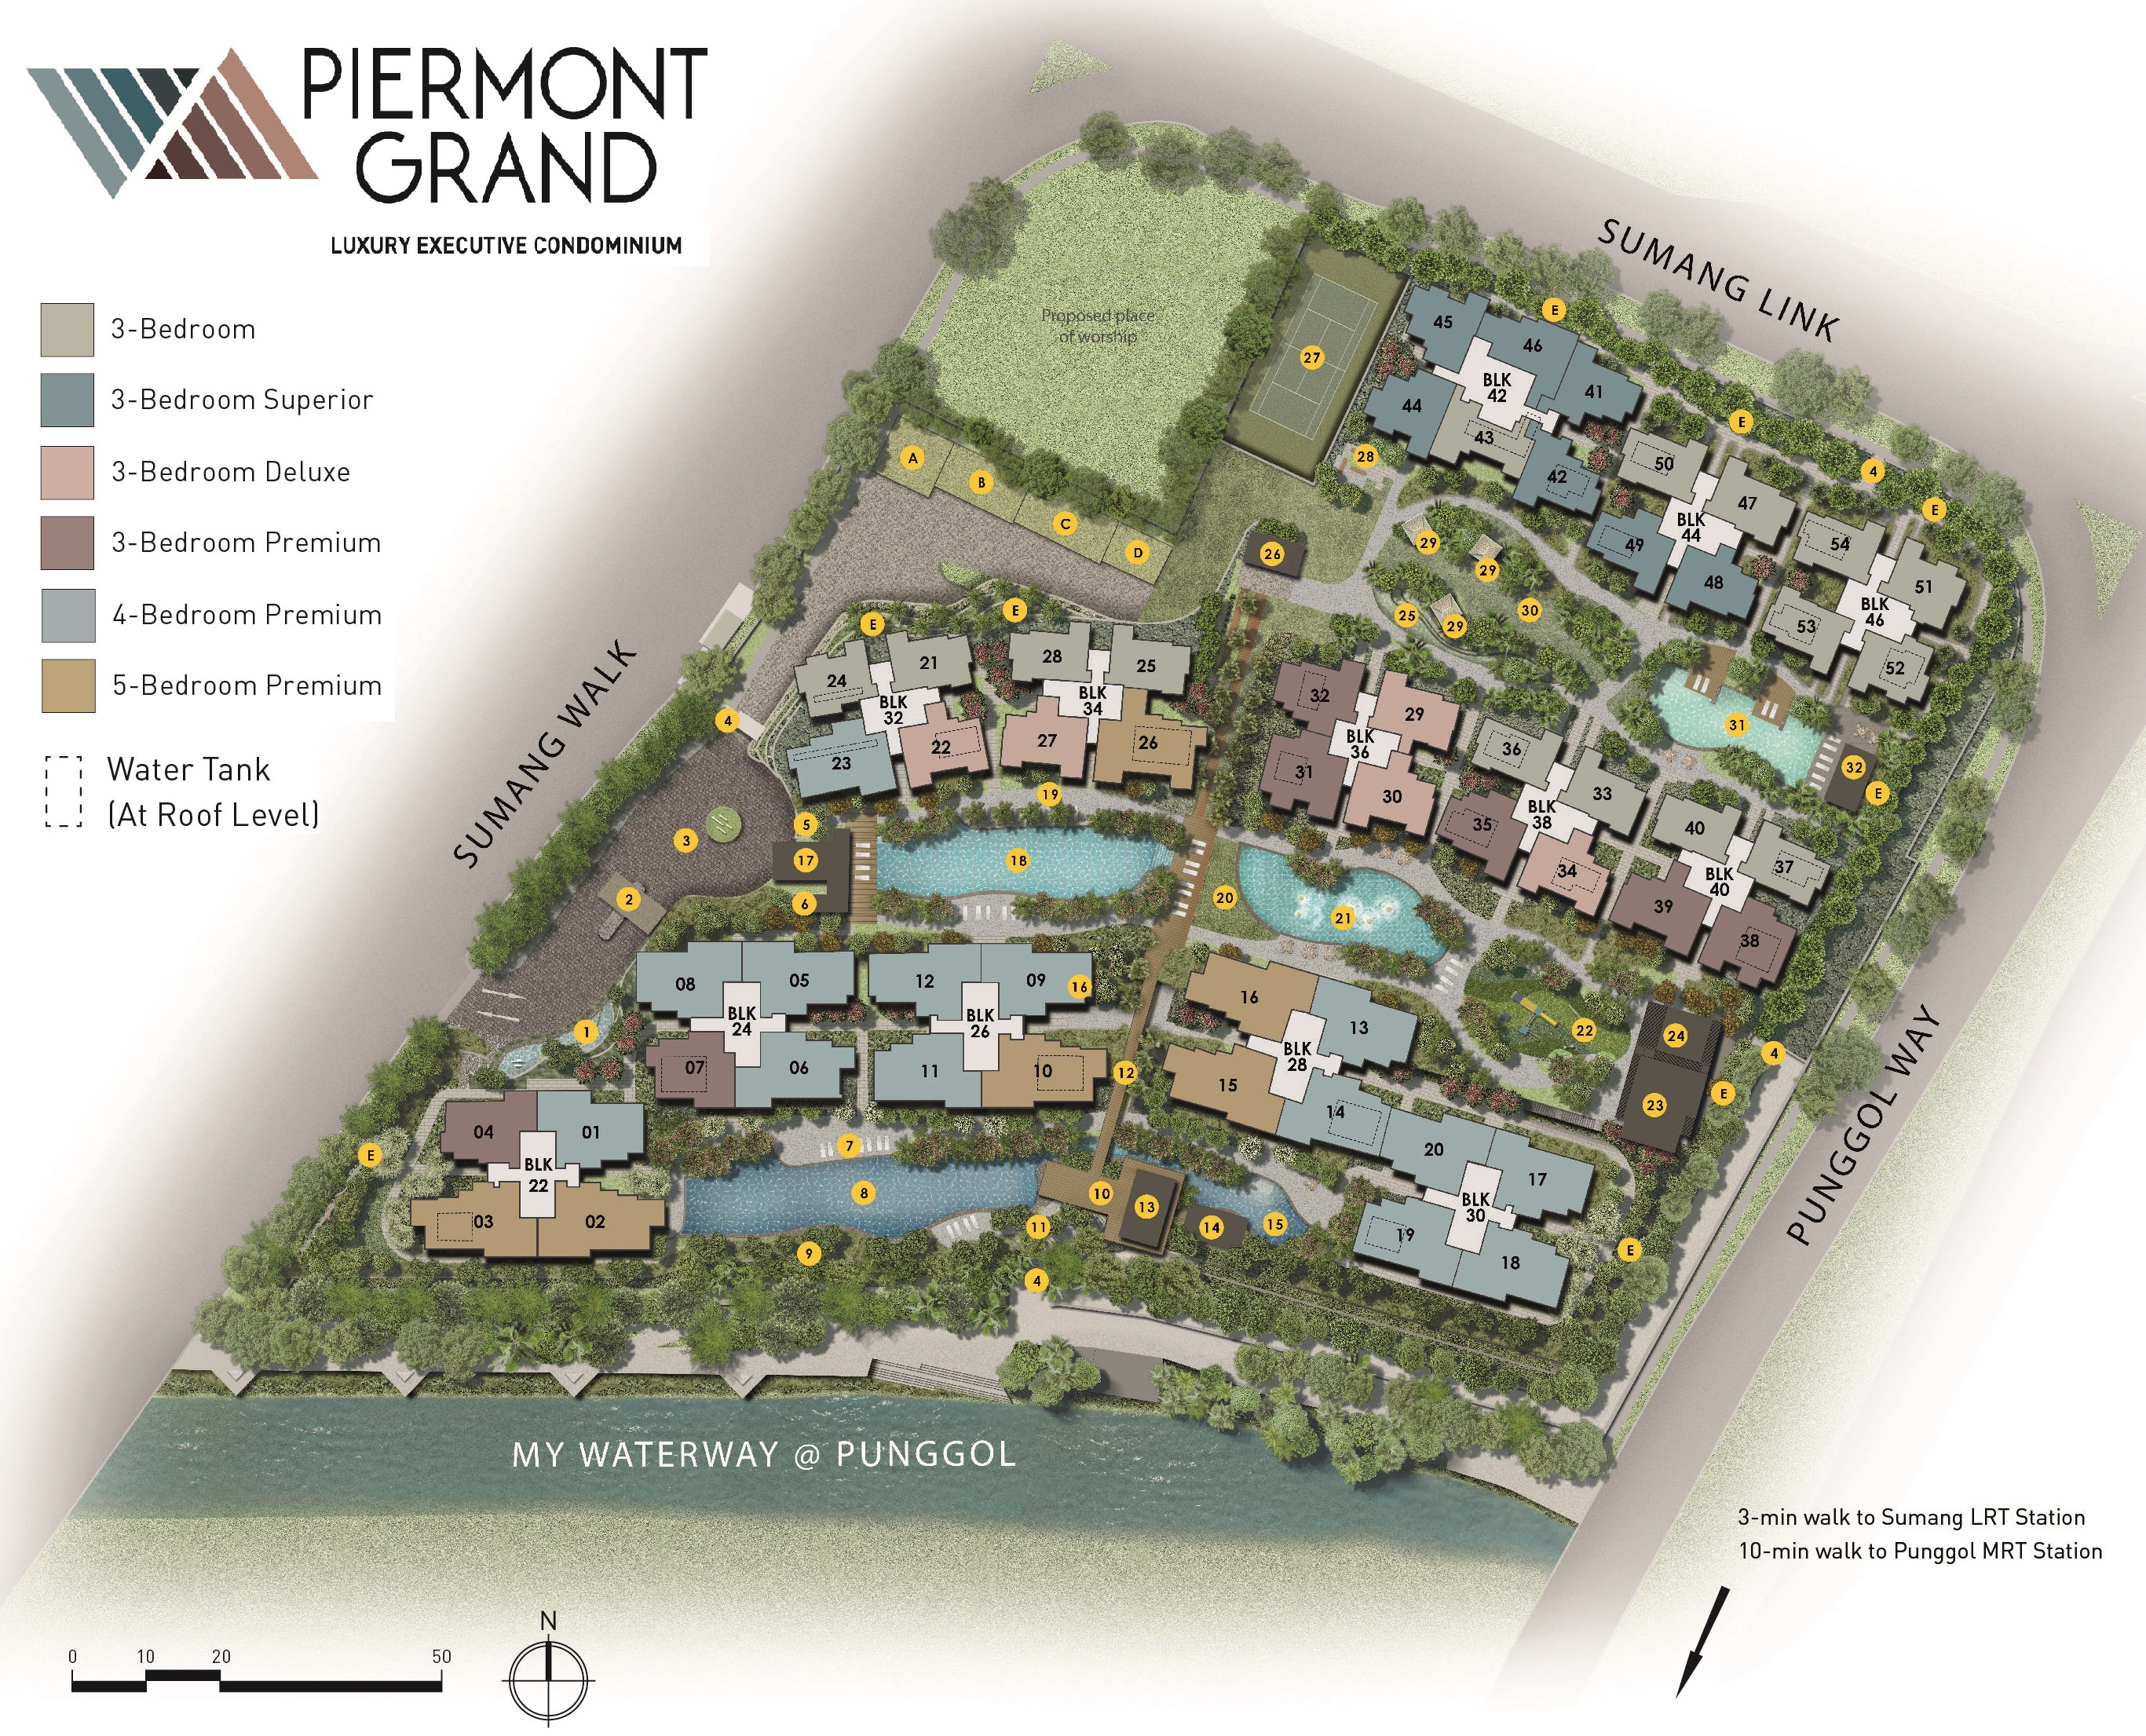 Piermont Grand EC Site Plan Facilities at Punggol Sumang Walk